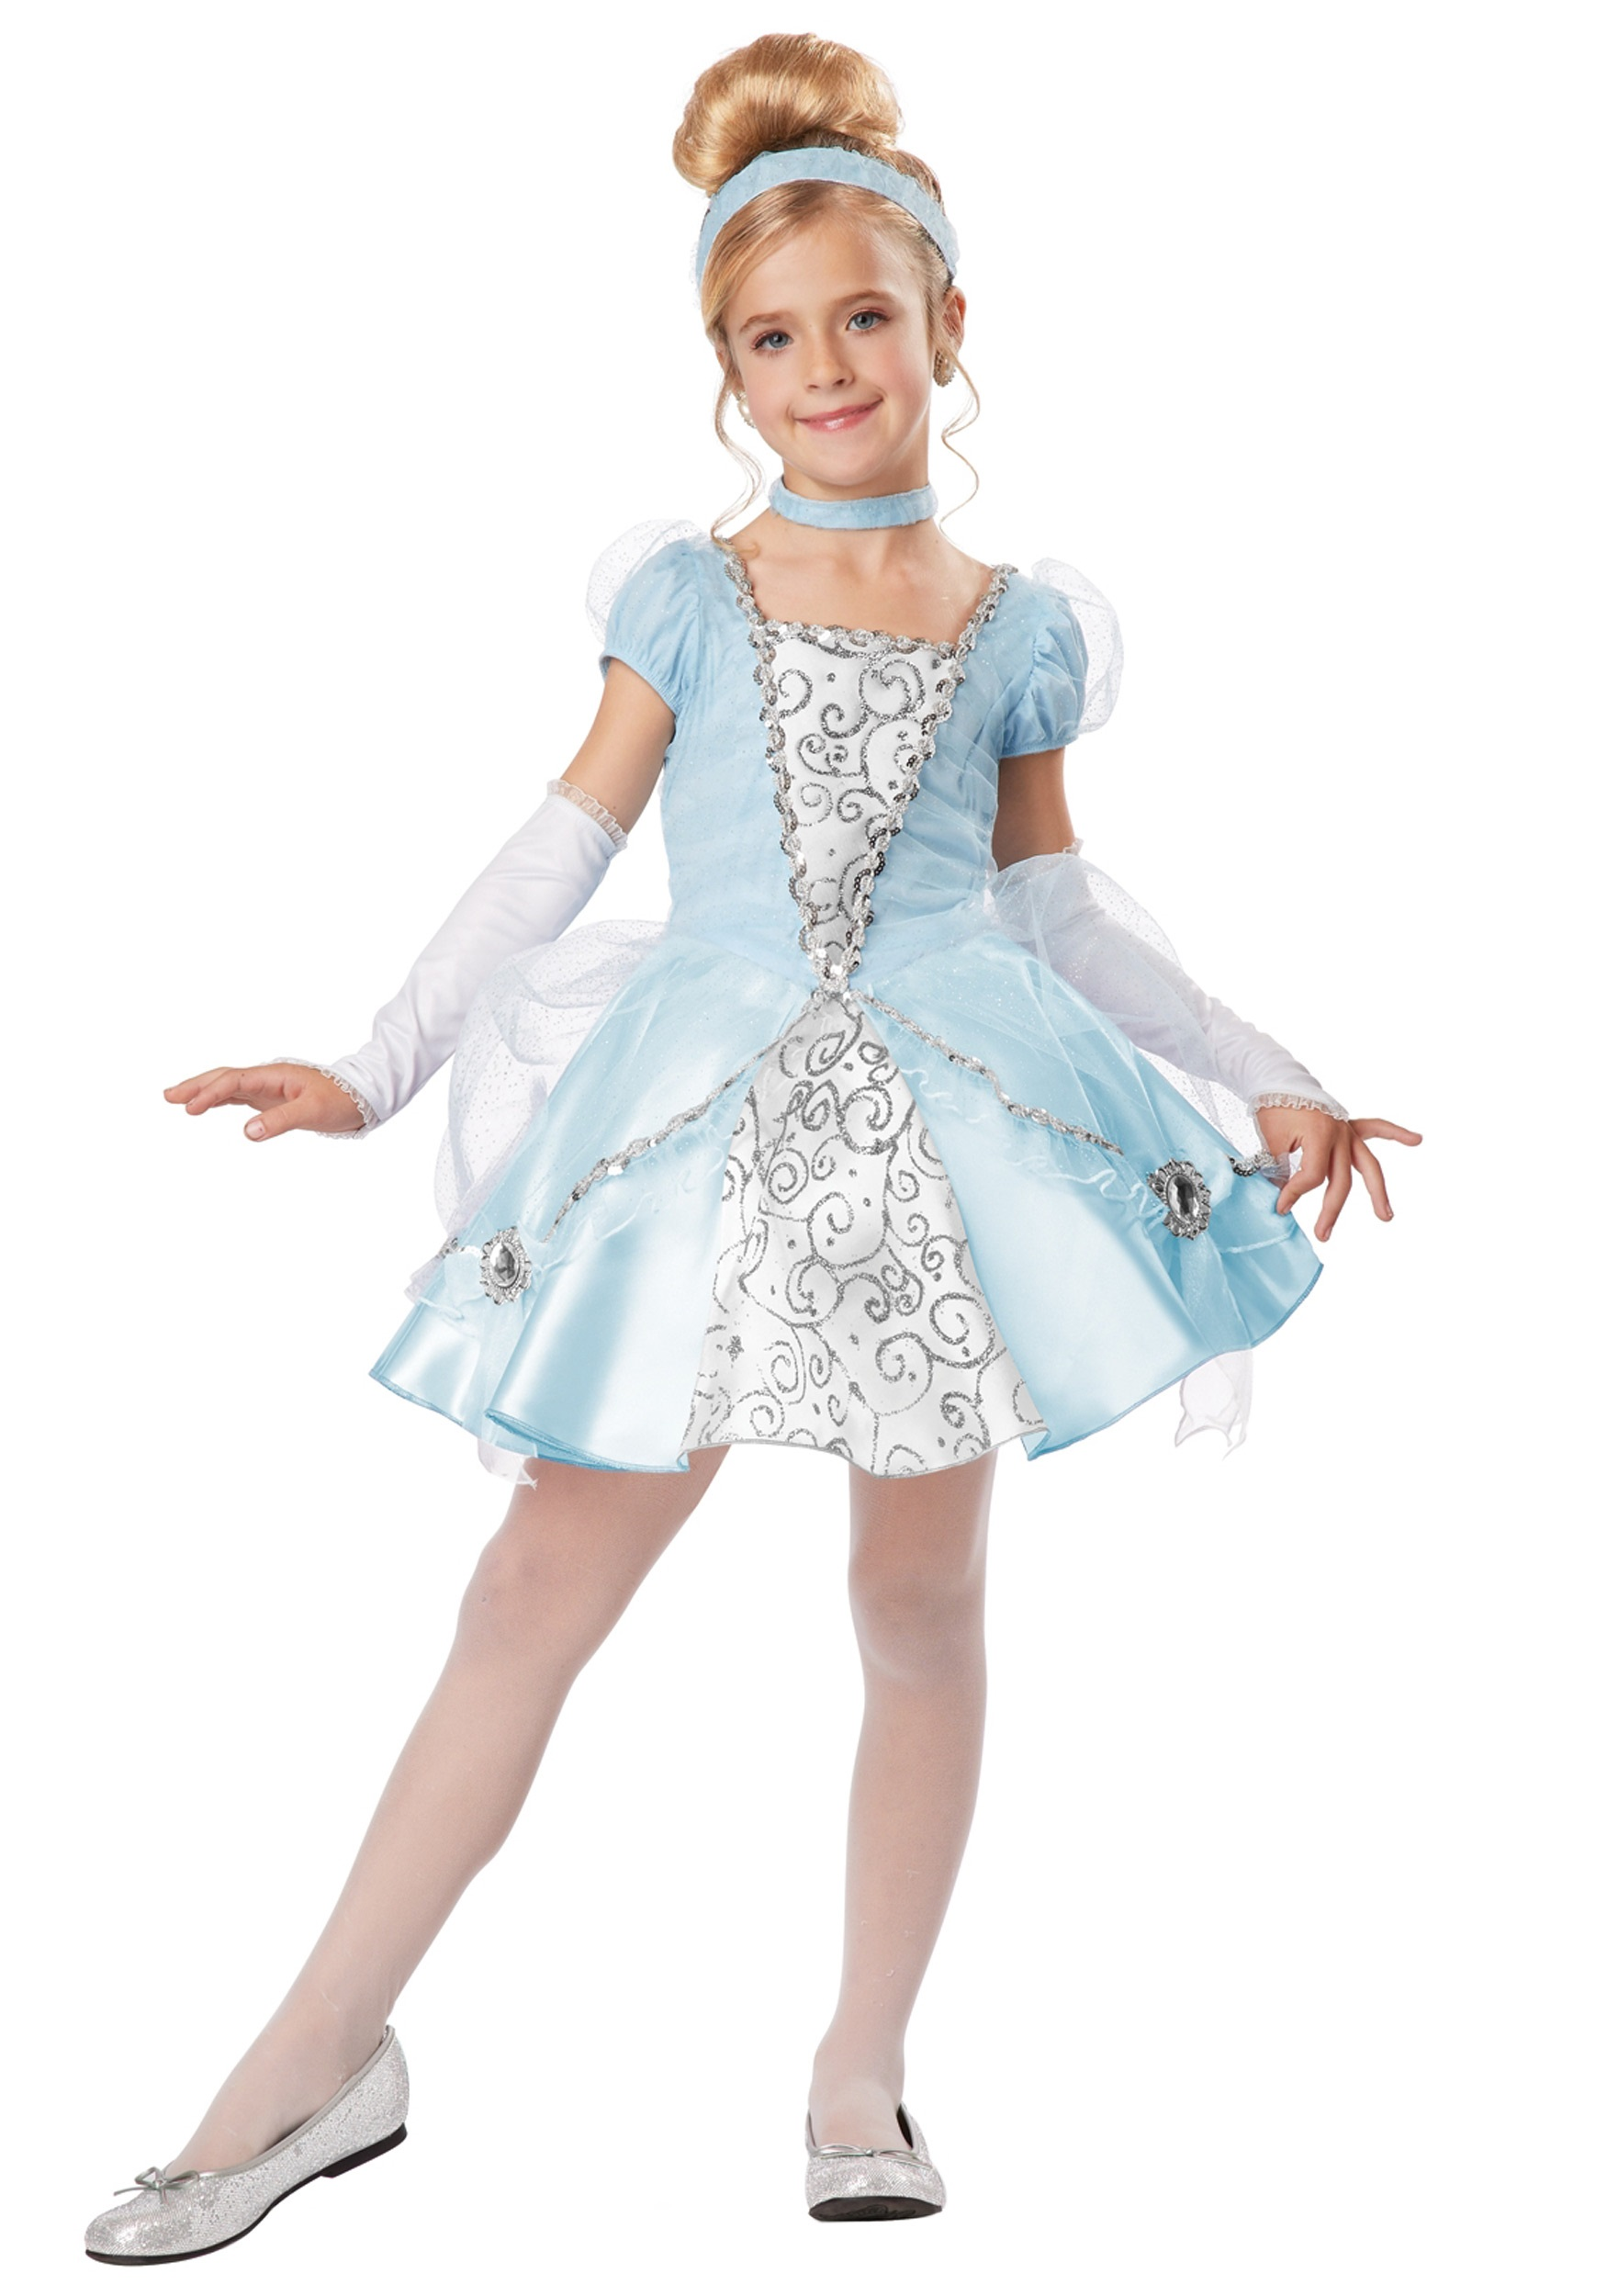 Deluxe Girls Cinderella Costume  sc 1 st  Halloween Costumes & Deluxe Girls Cinderella Costume - Halloween Costumes